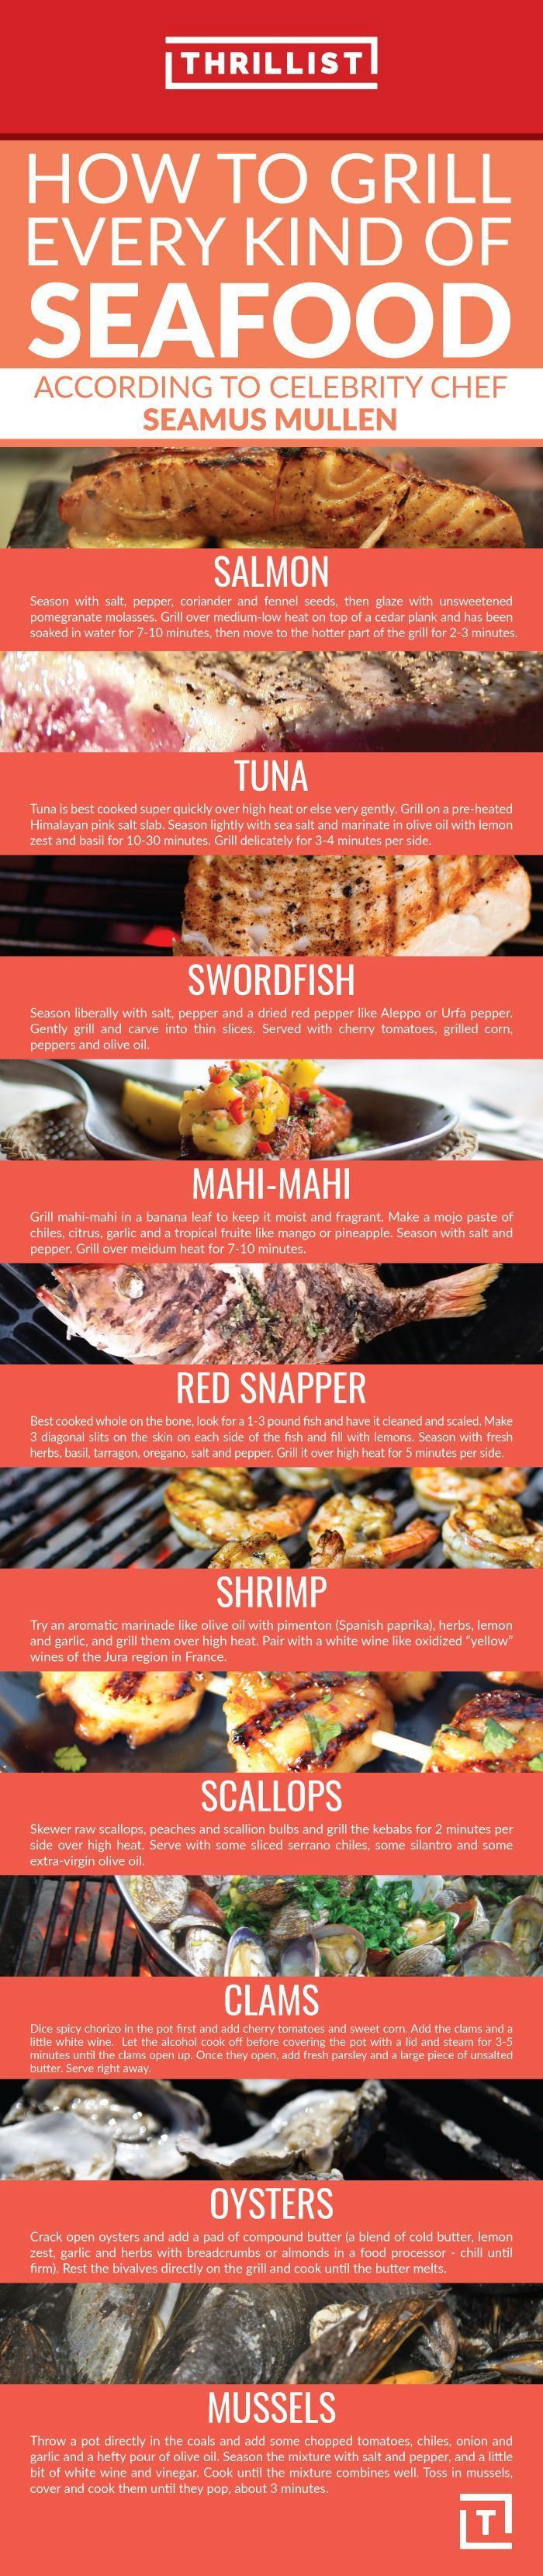 How To Grill Every Kind Of Seafood According To Seamus Mullen With Images Grilled Seafood Seamus Mullen Seafood Recipes